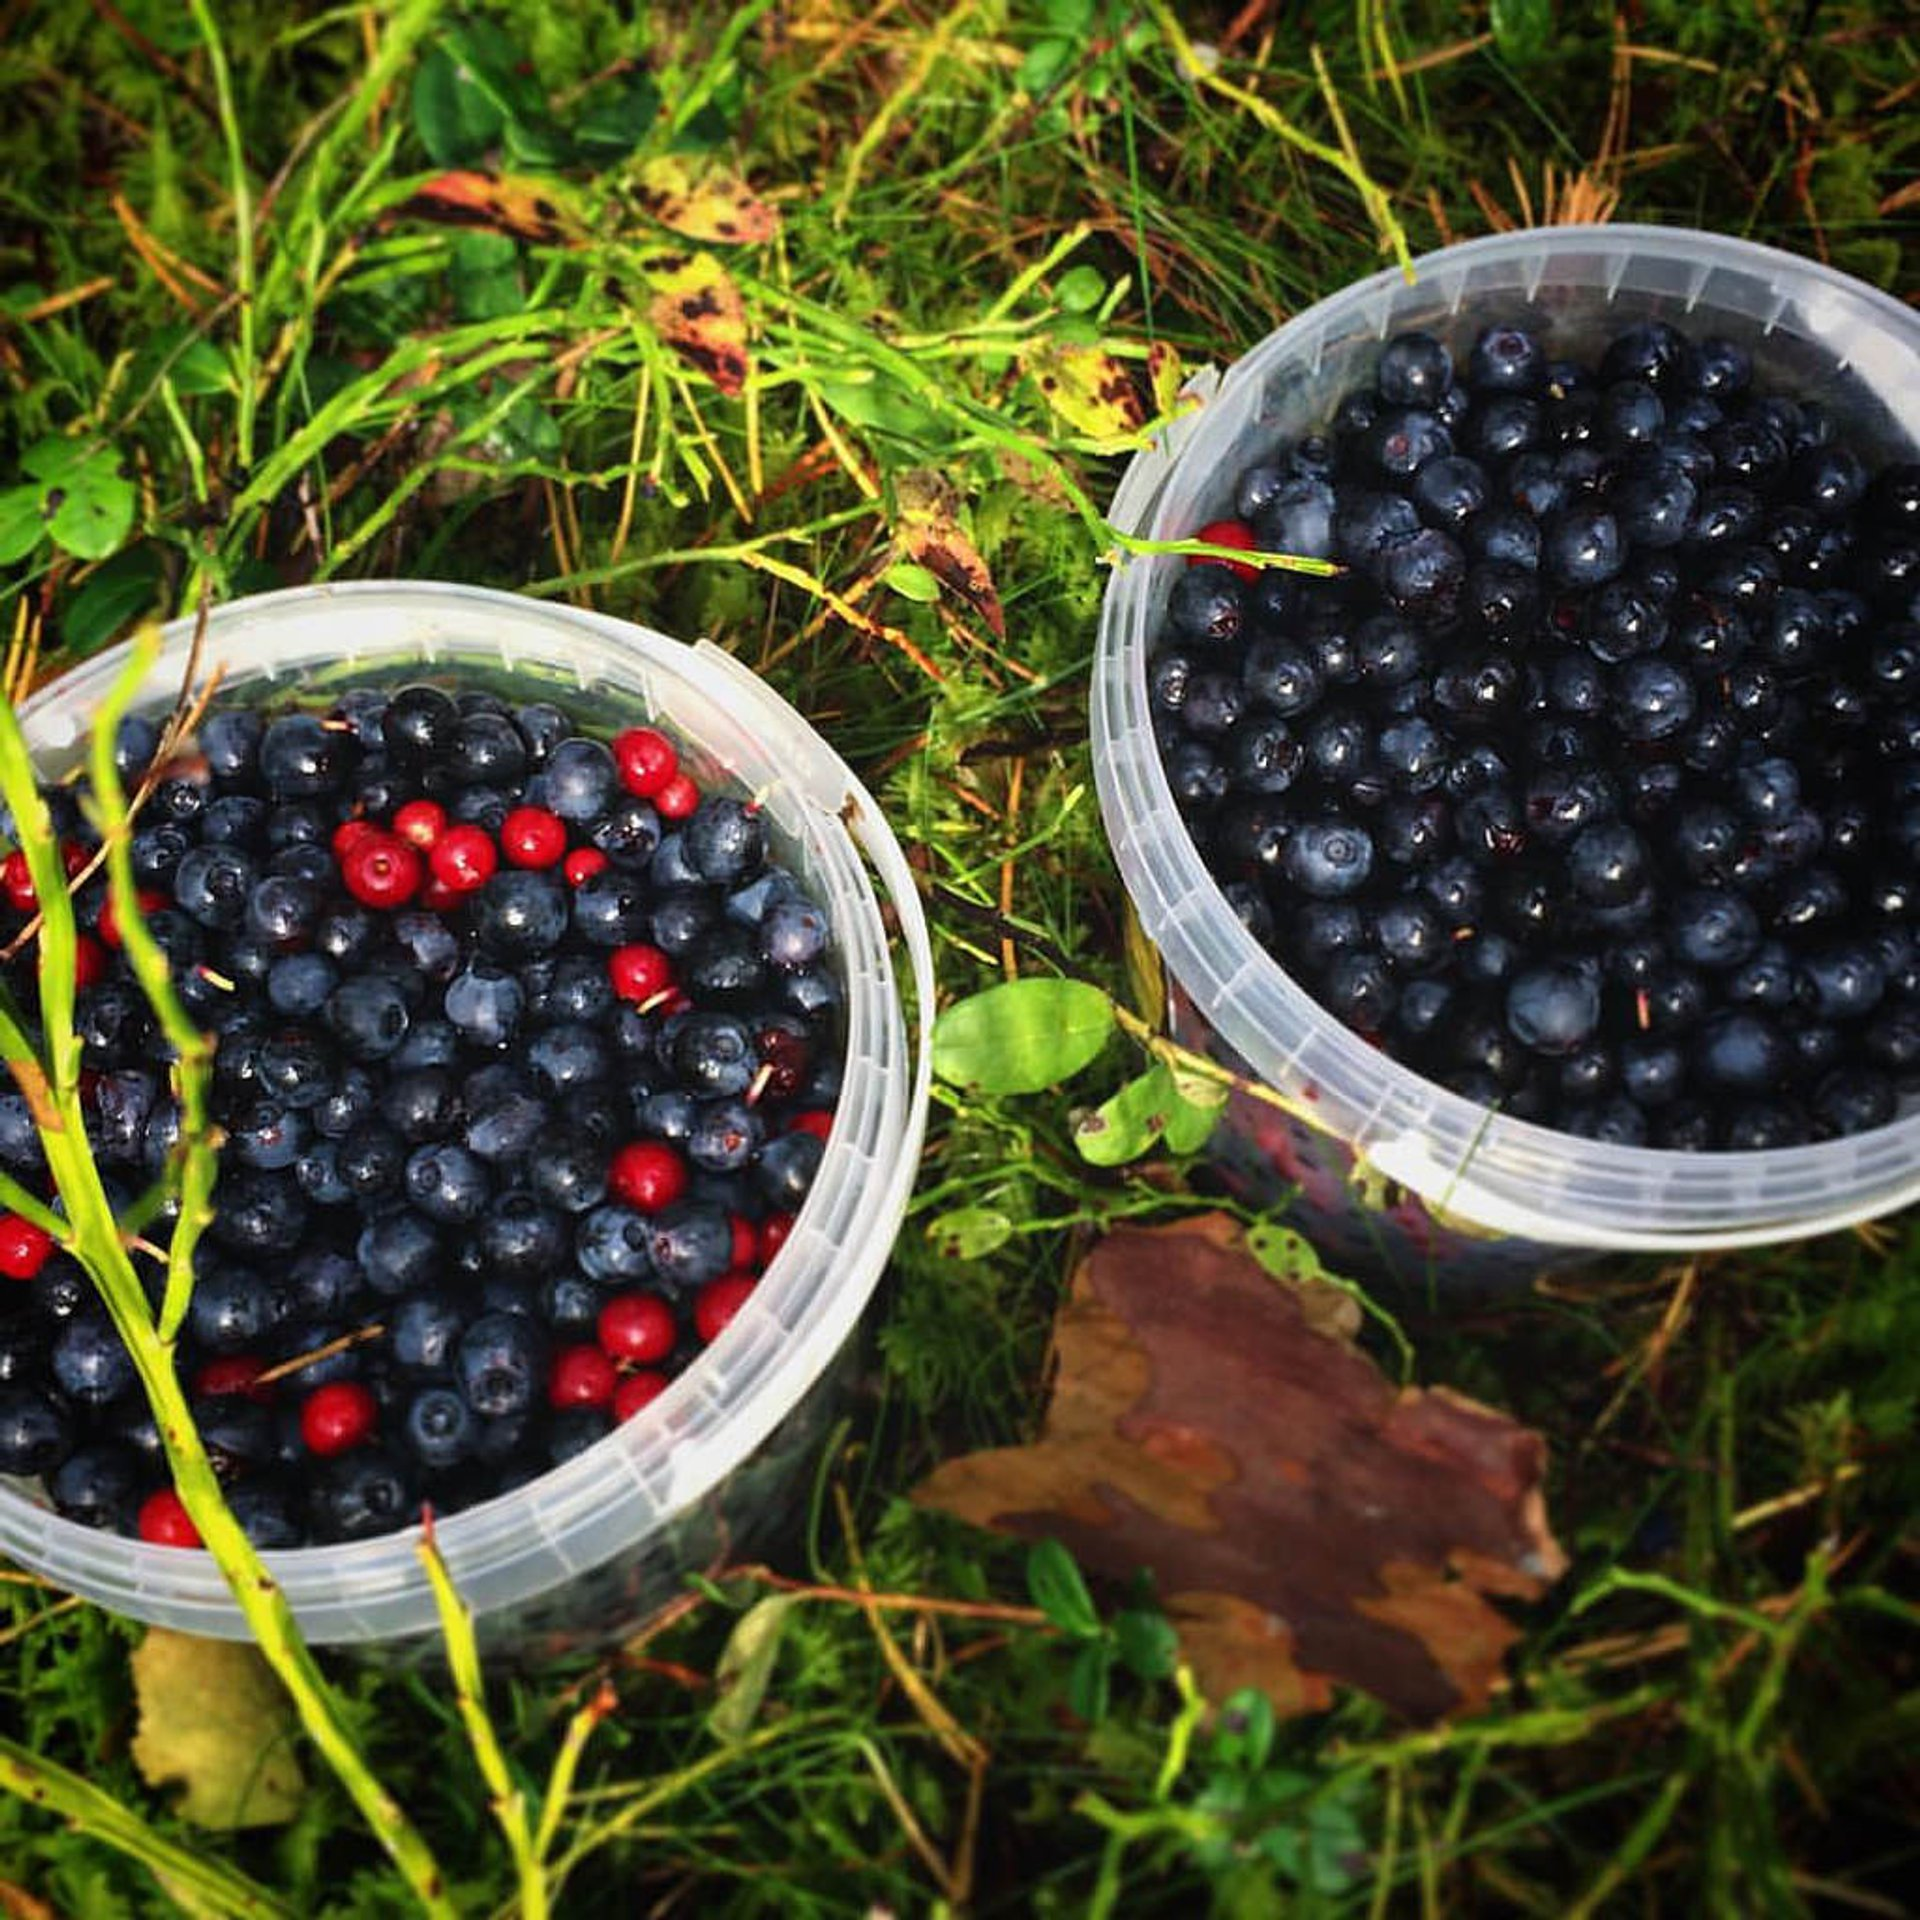 Blueberries and mountain blackberries, Viljandi, Estonia 2020